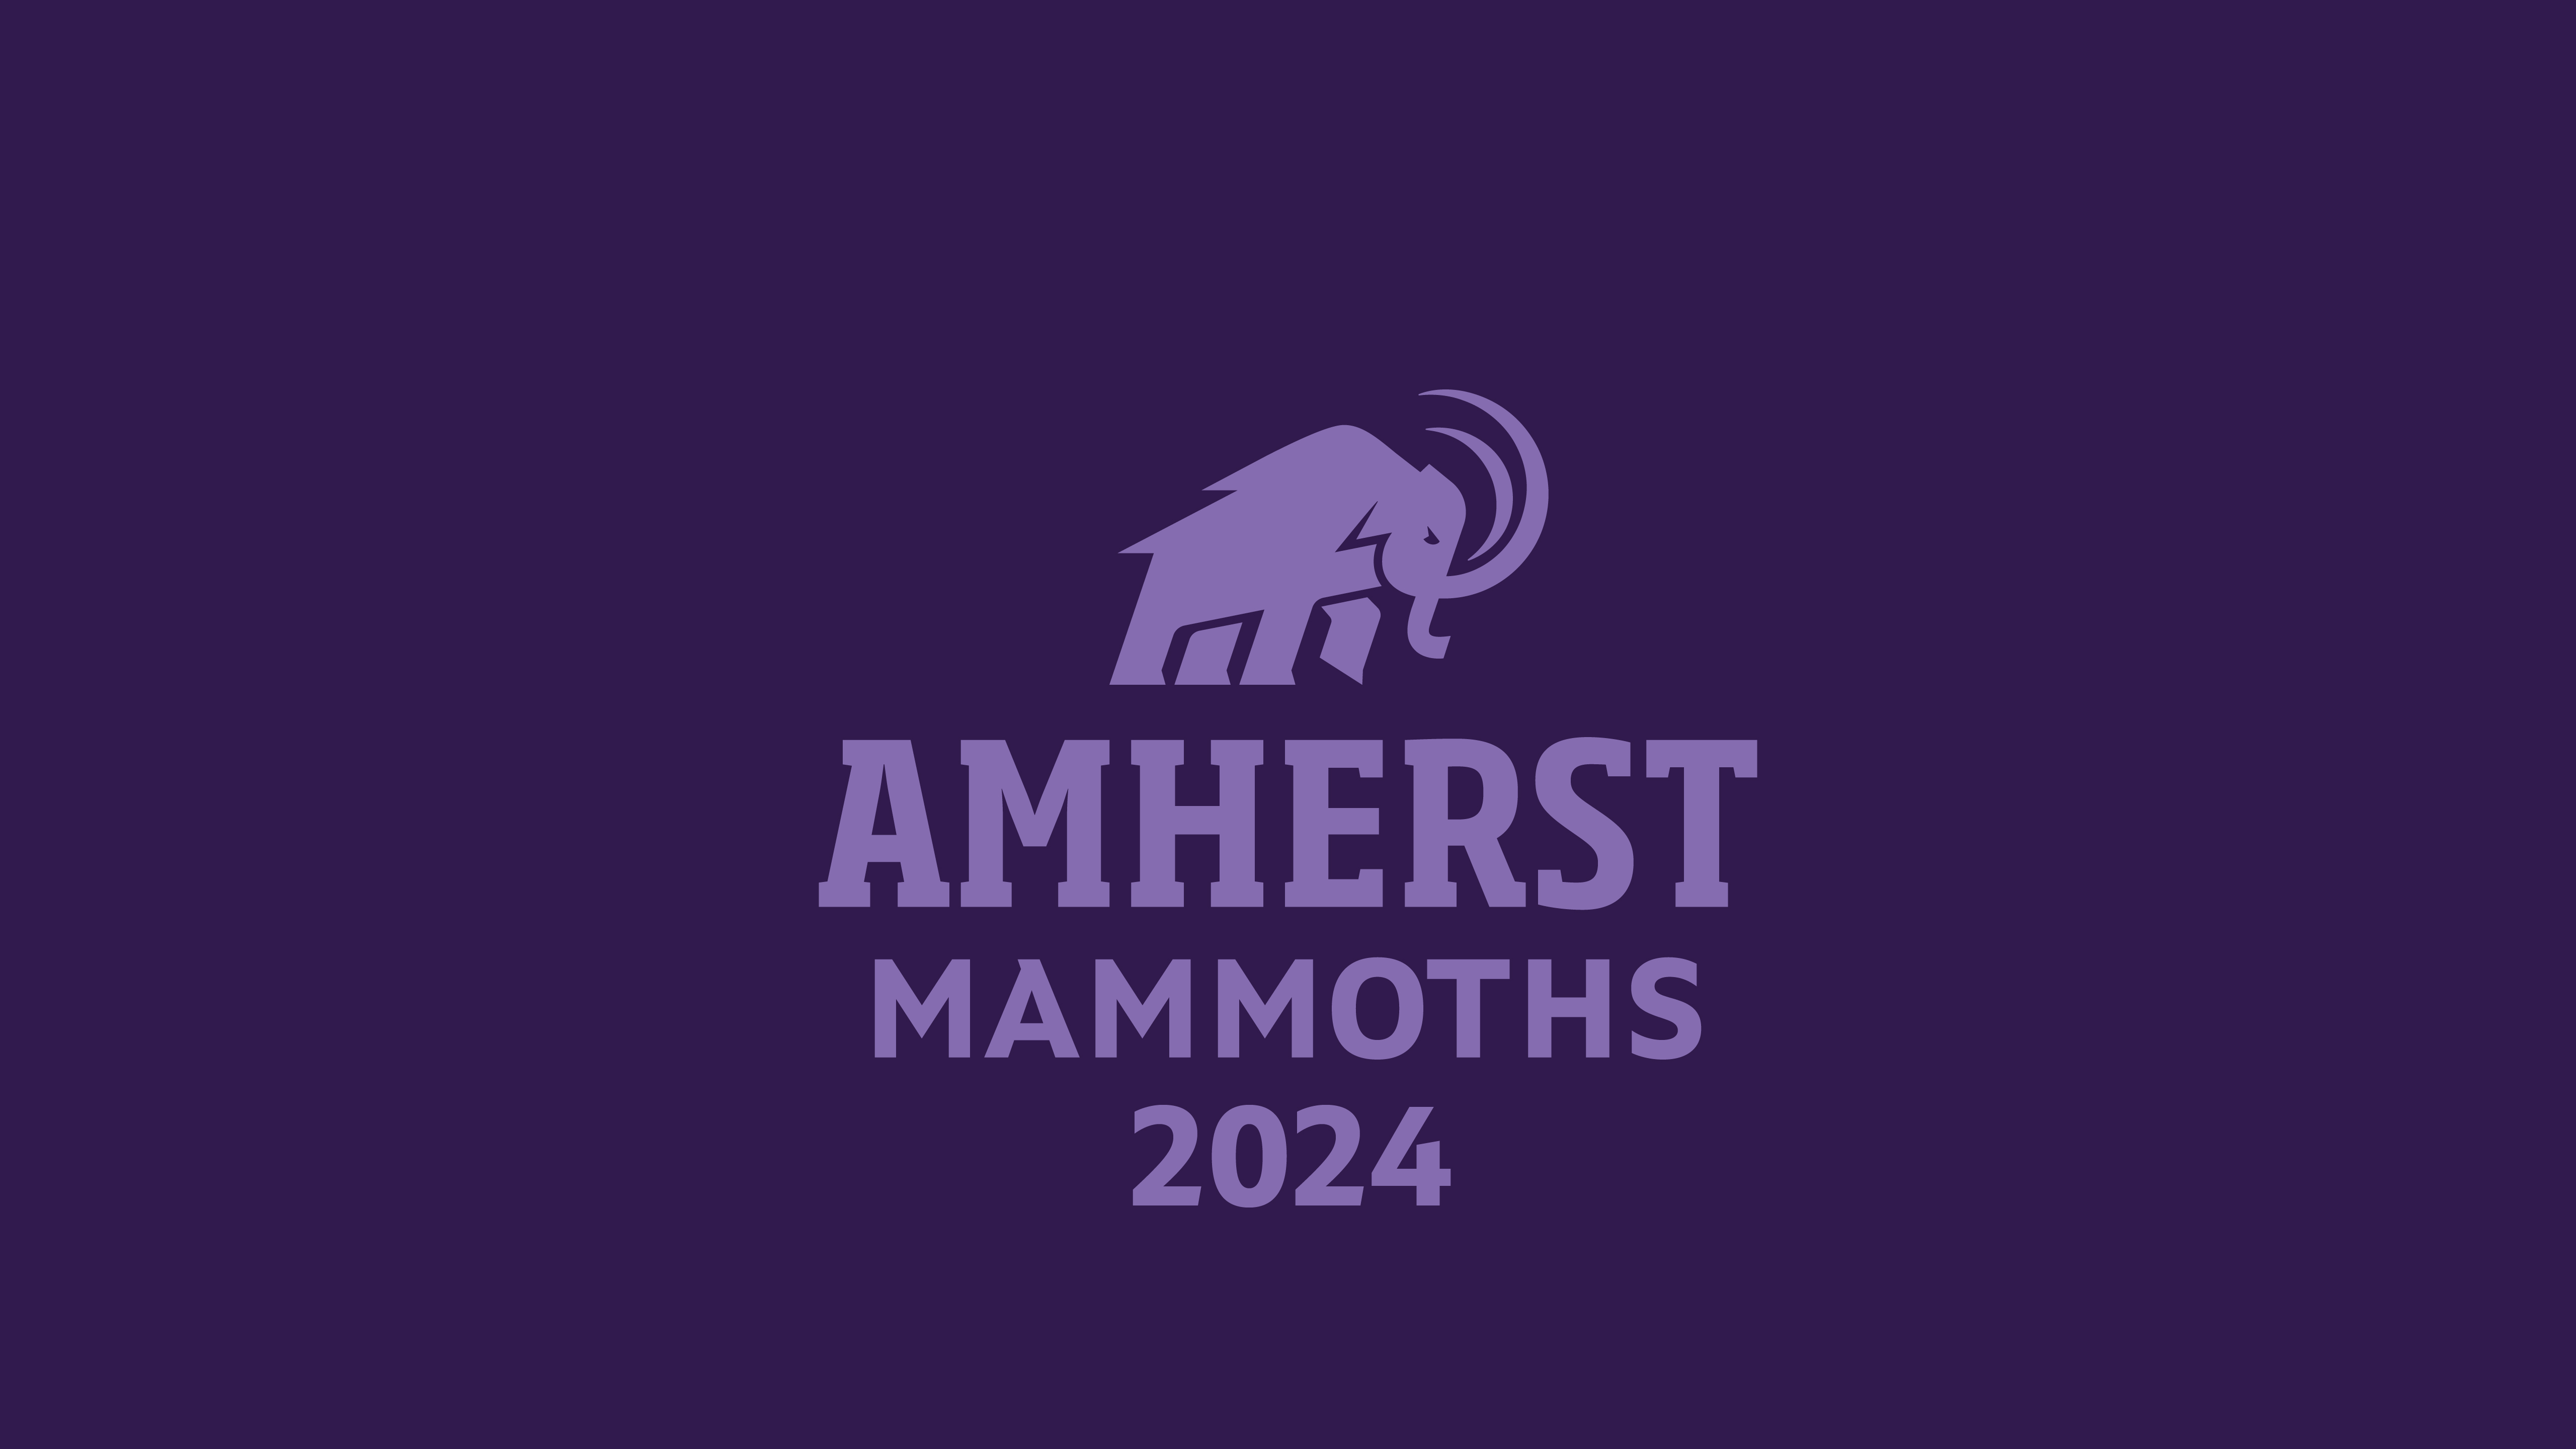 Amherst Mammoths Class of 2024 purple background with mammoth